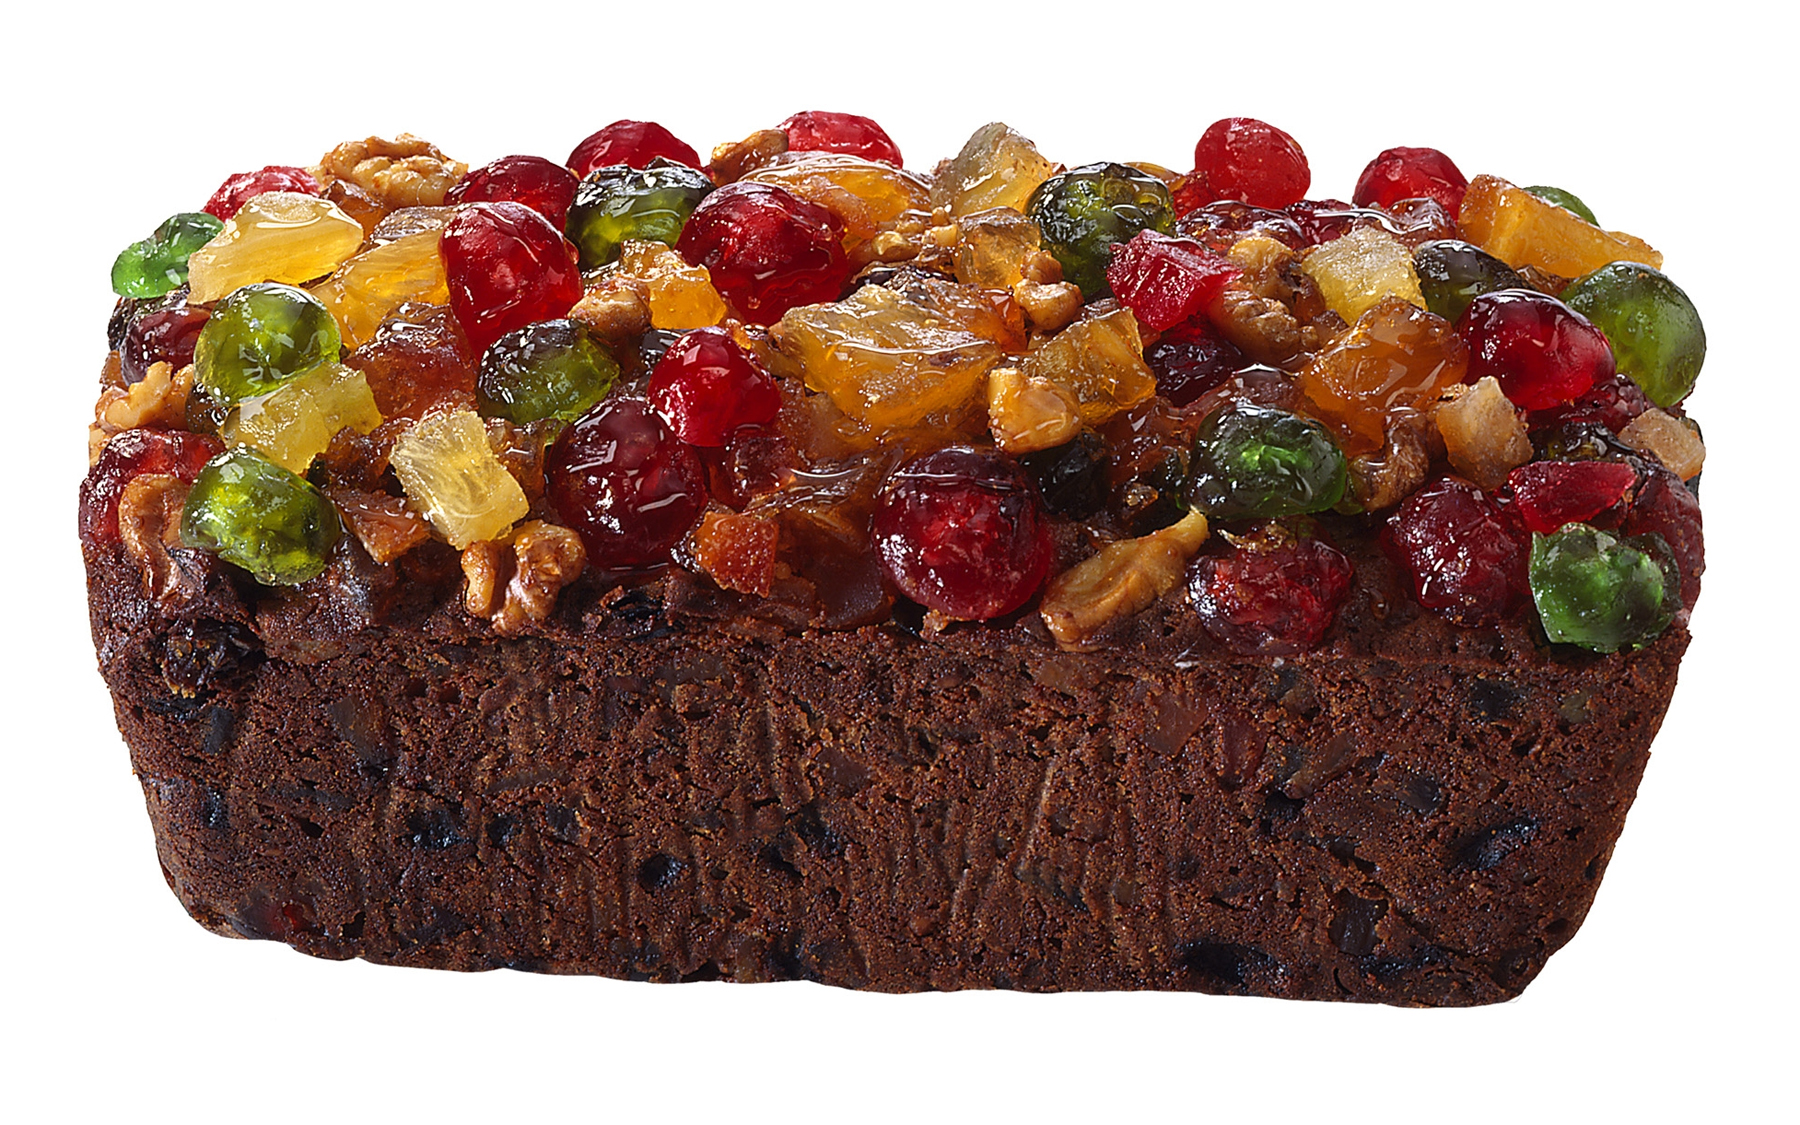 Calories In Homemade Christmas Cake